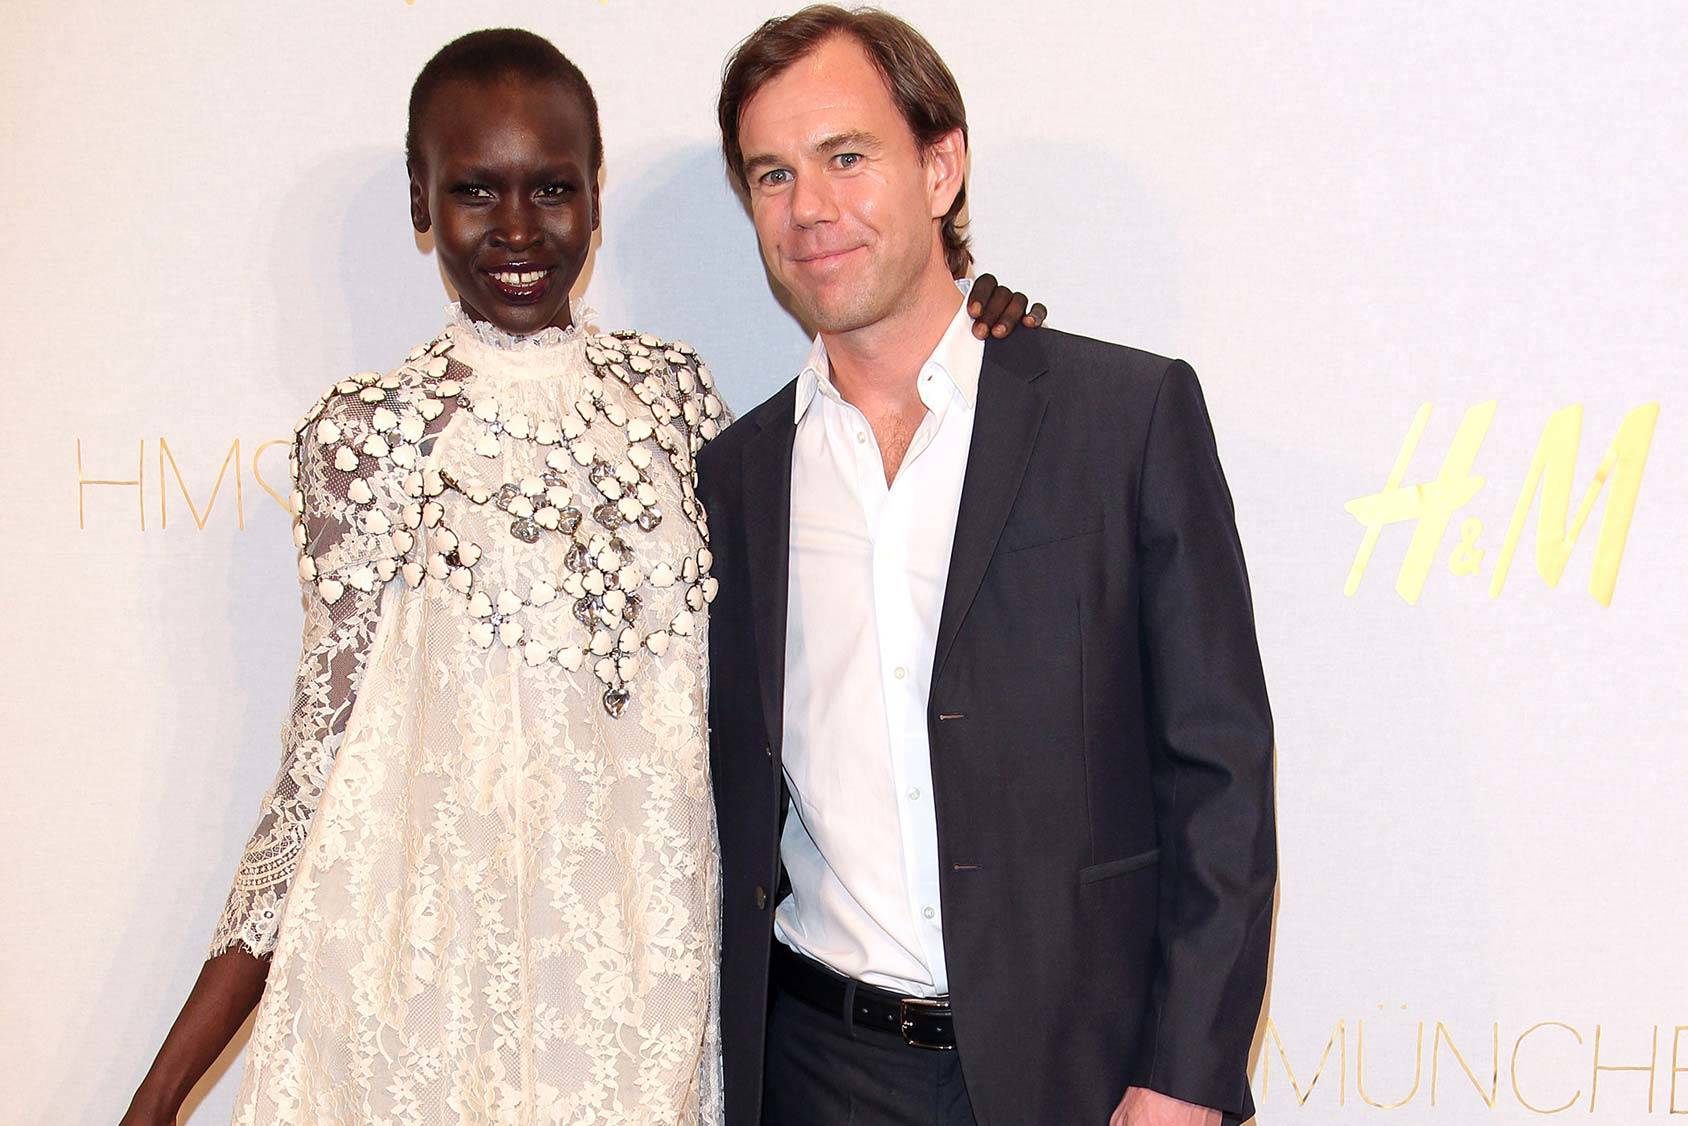 Alek Wek and CEO of H&M Karl-Johan Persson, Getty Images.